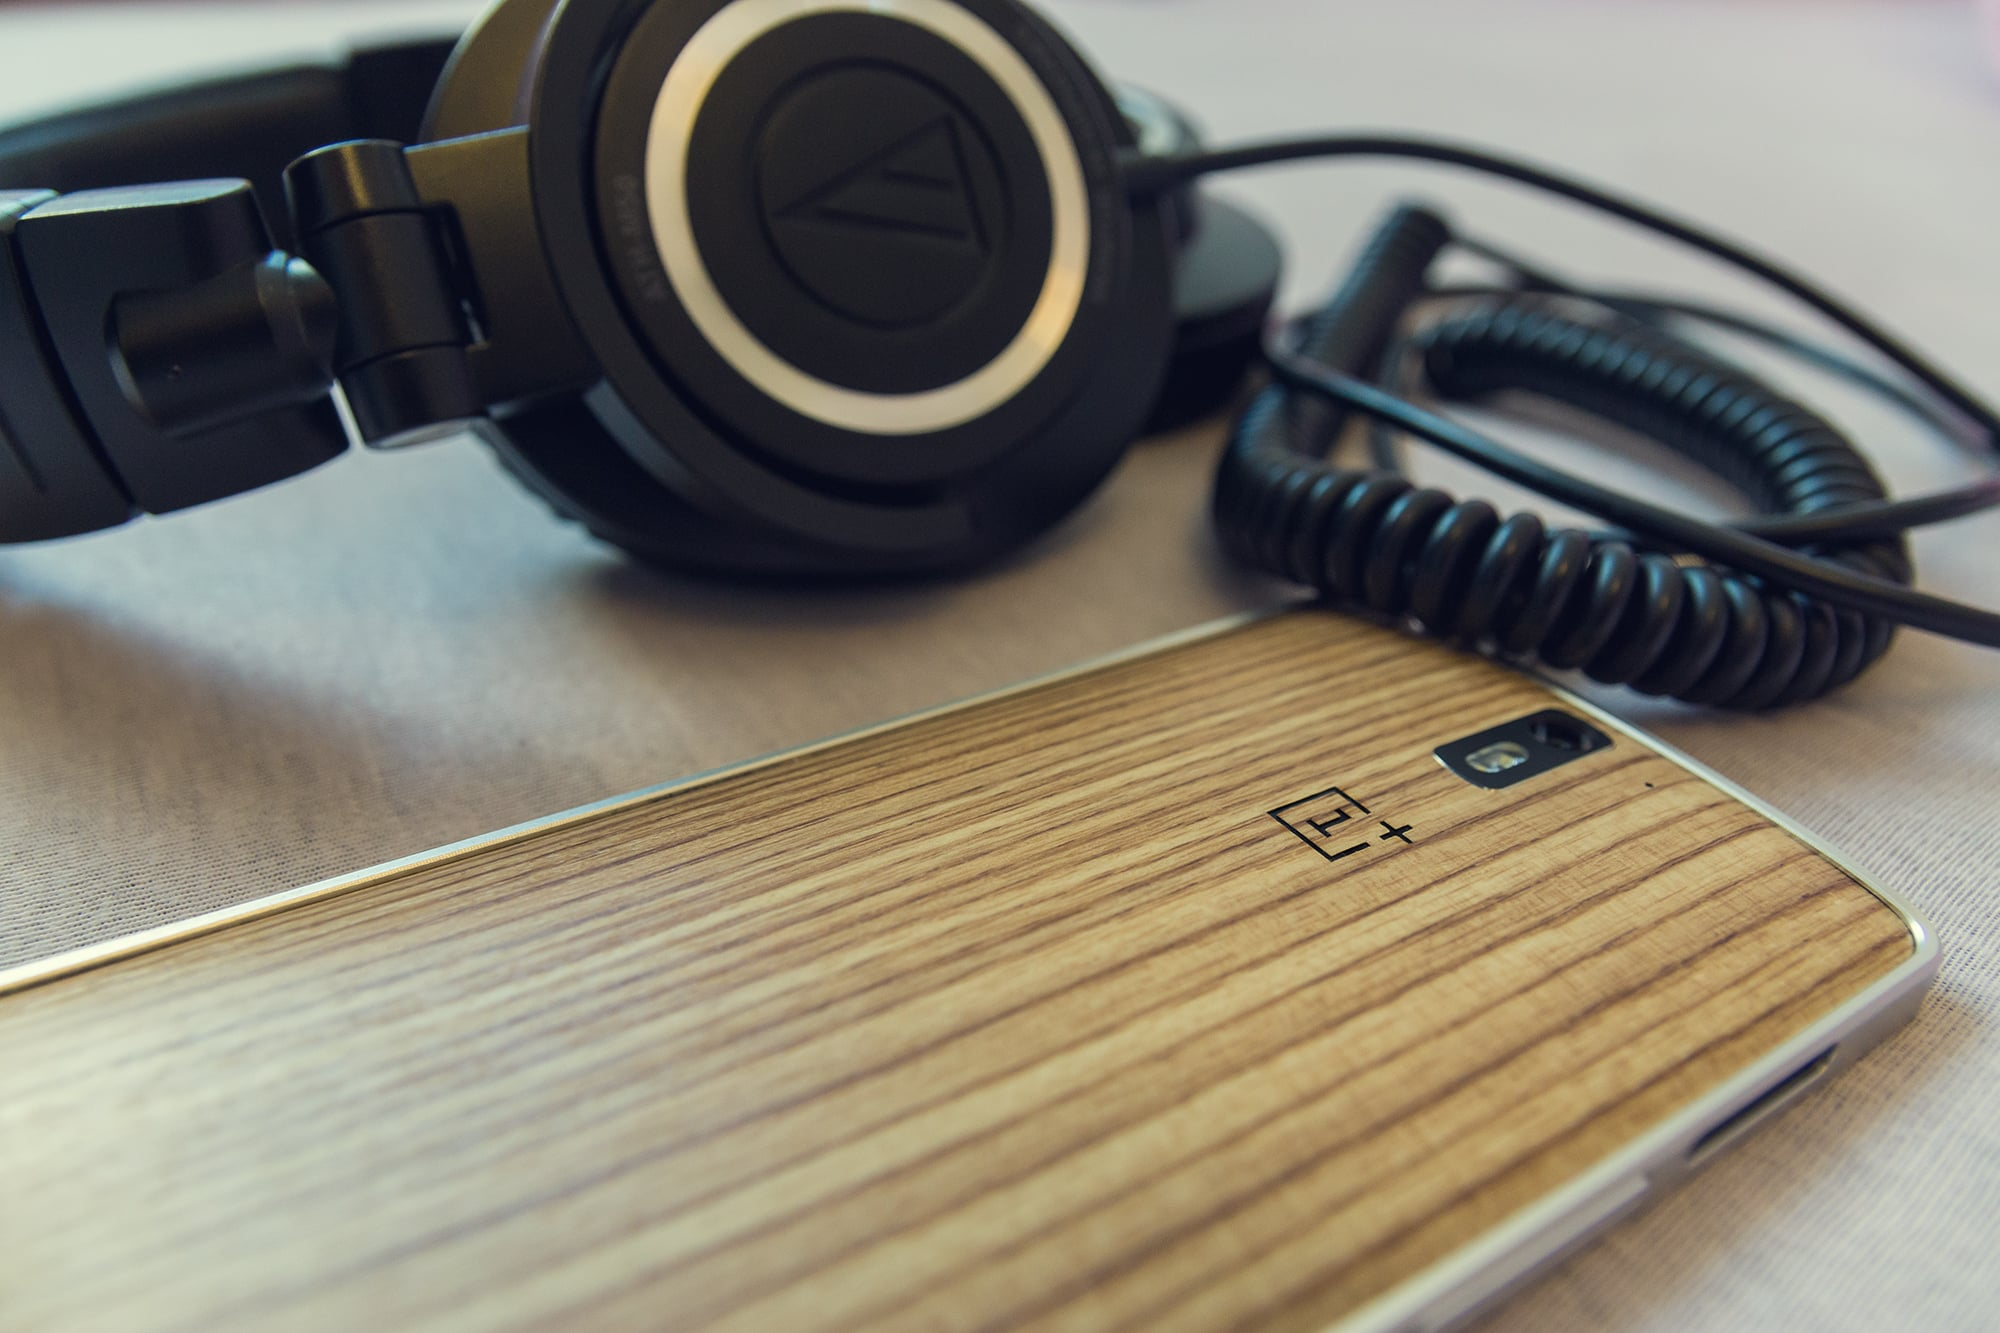 Audio Technica HD wallpapers High Resolution Download